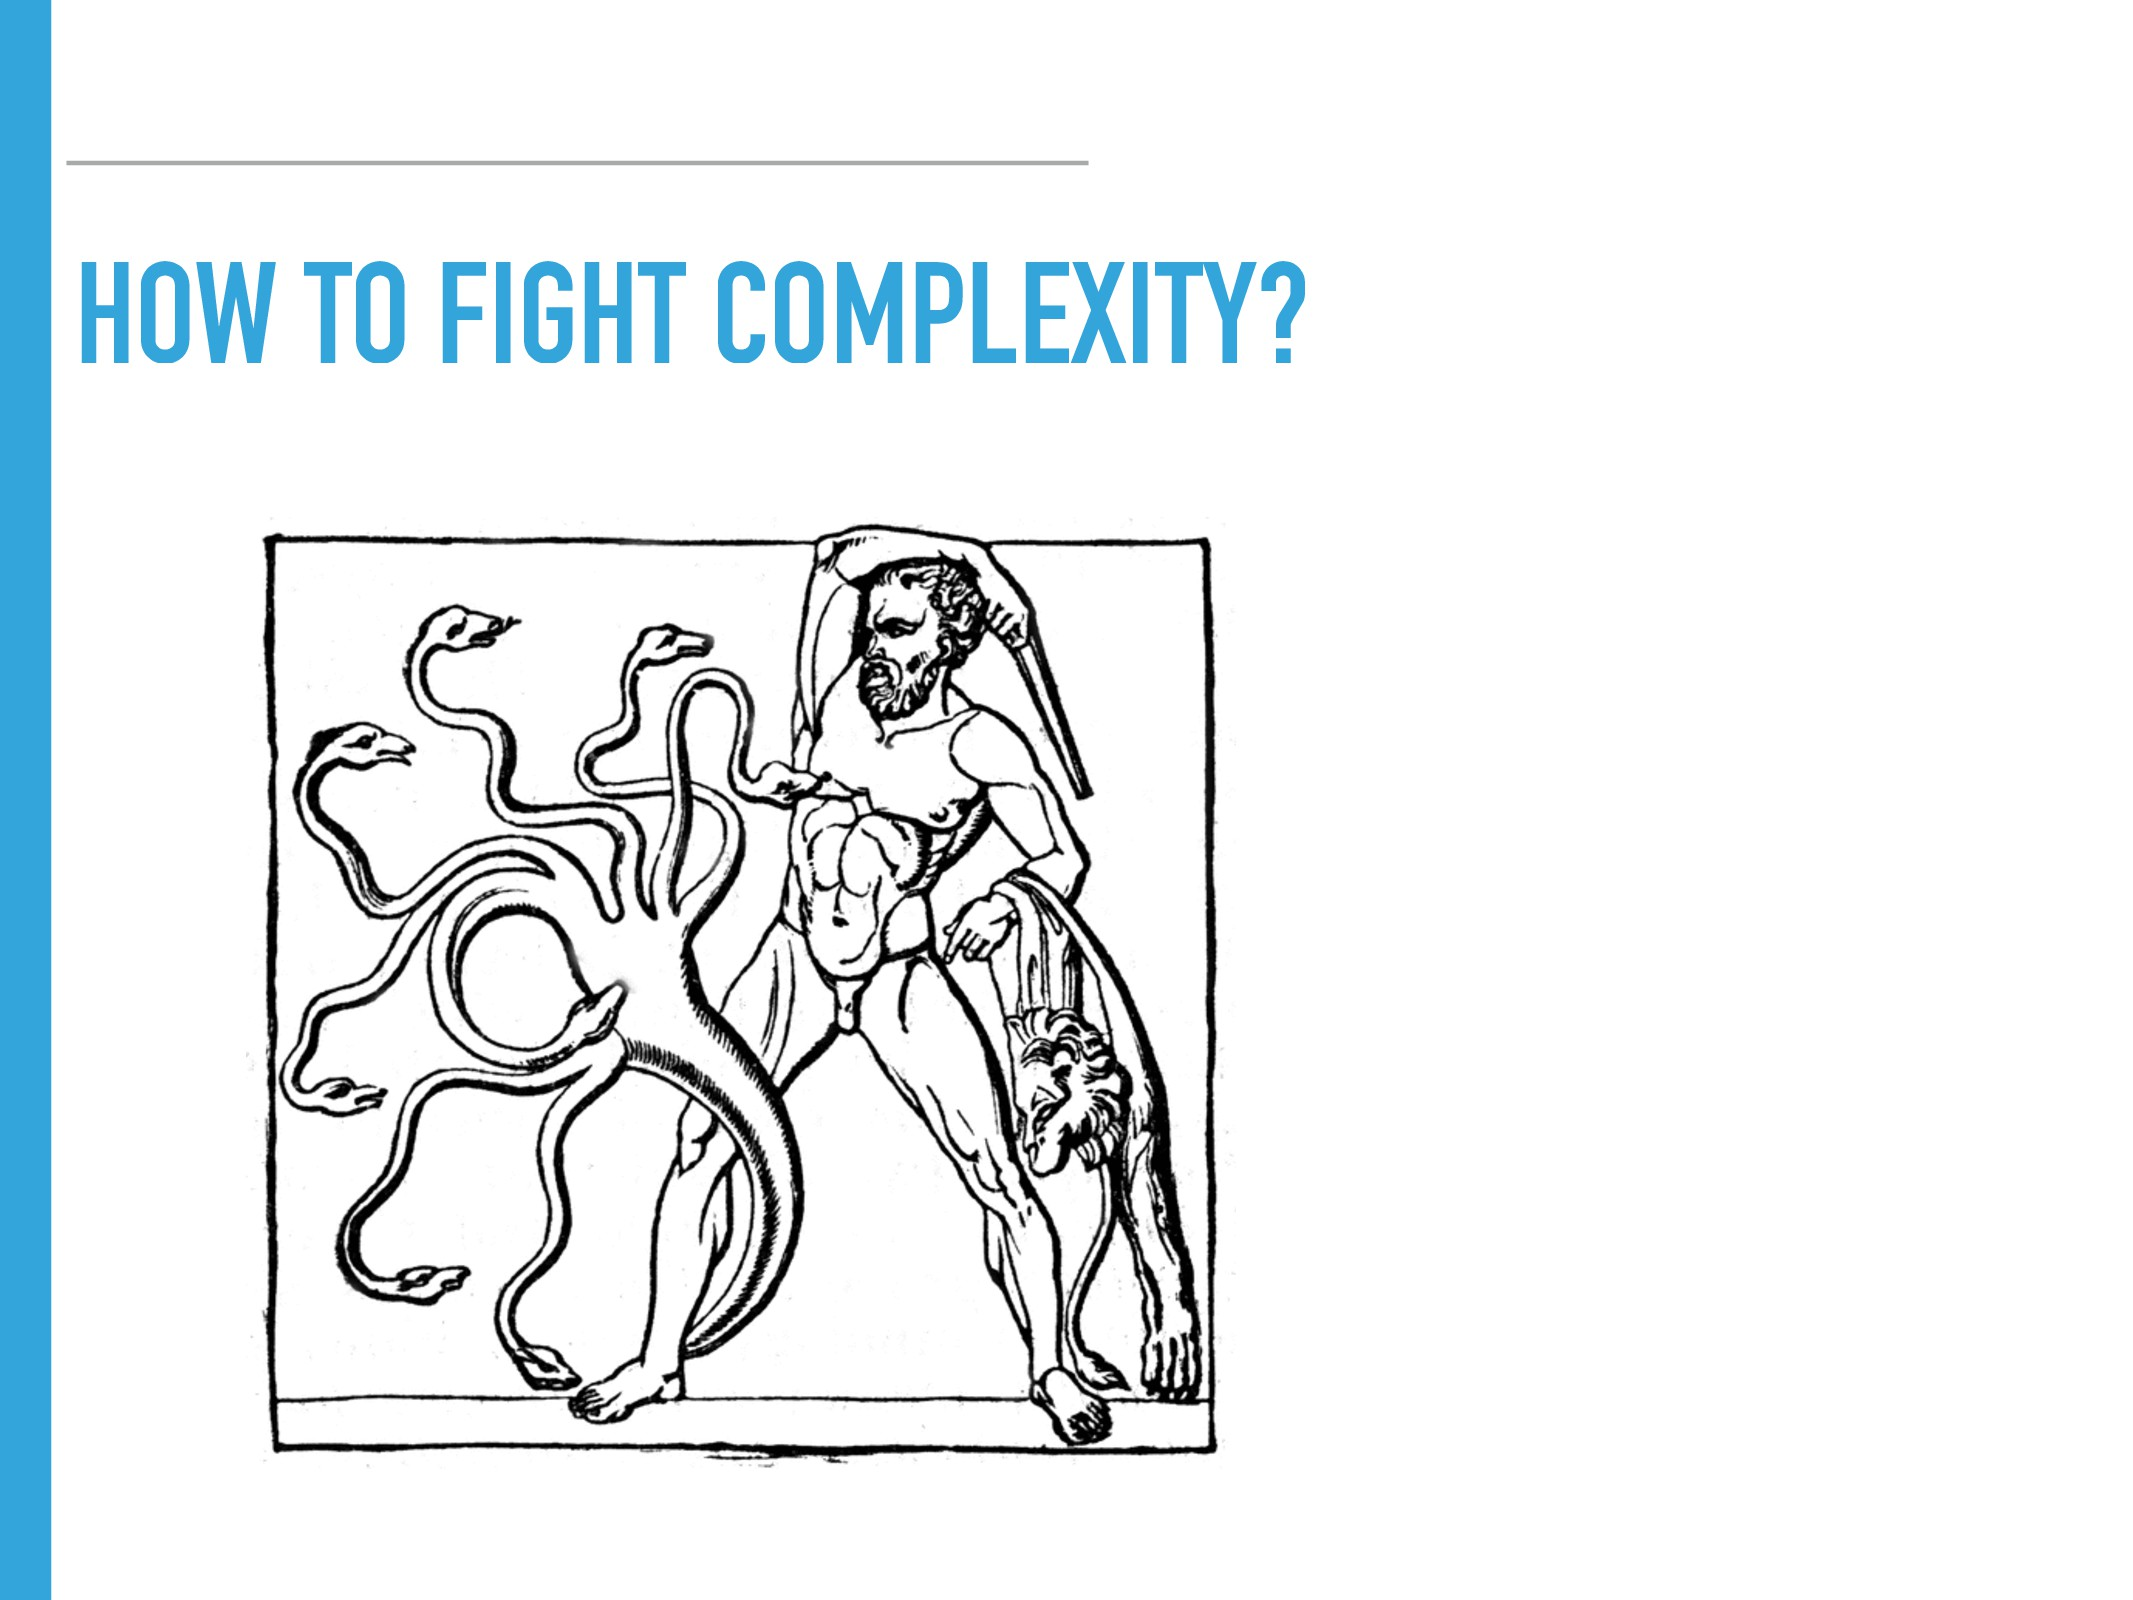 HOW TO FIGHT COMPLEXITY?